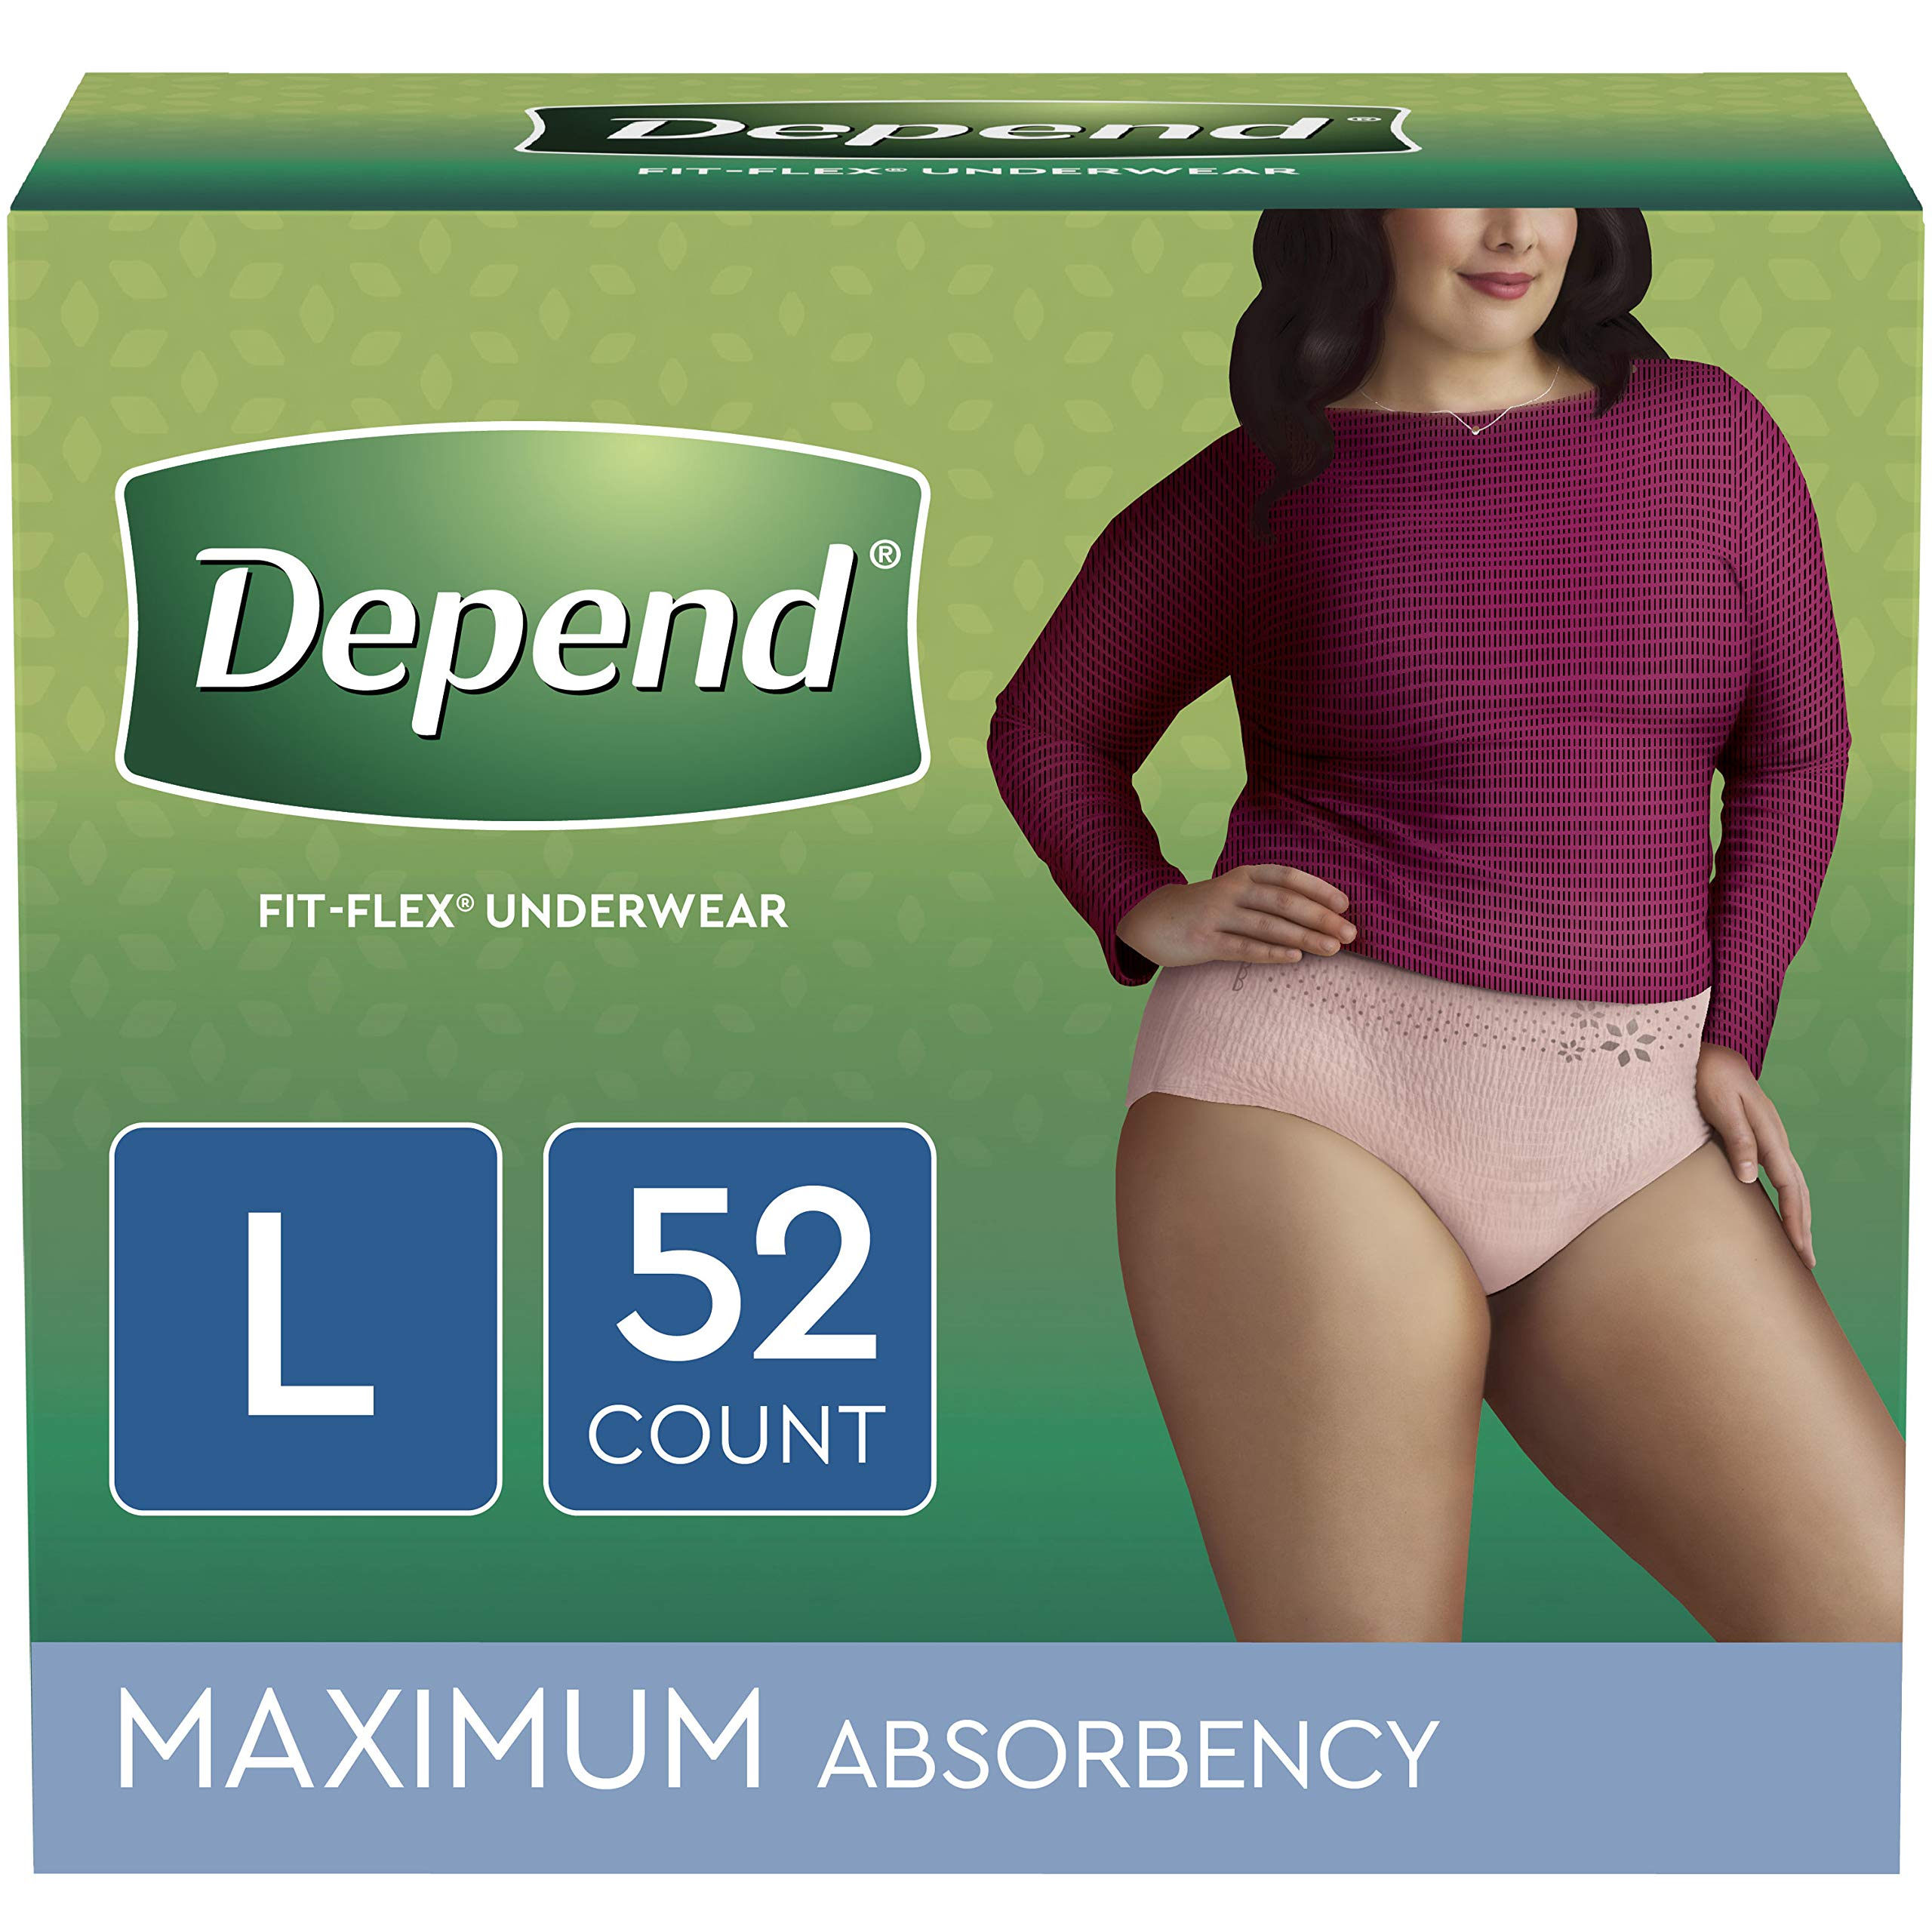 Depend FIT-FLEX Incontinence Underwear for Women, Disposable, Maximum Absorbency, Blush, Large (52 Count)(Packaging May Vary) by Depend